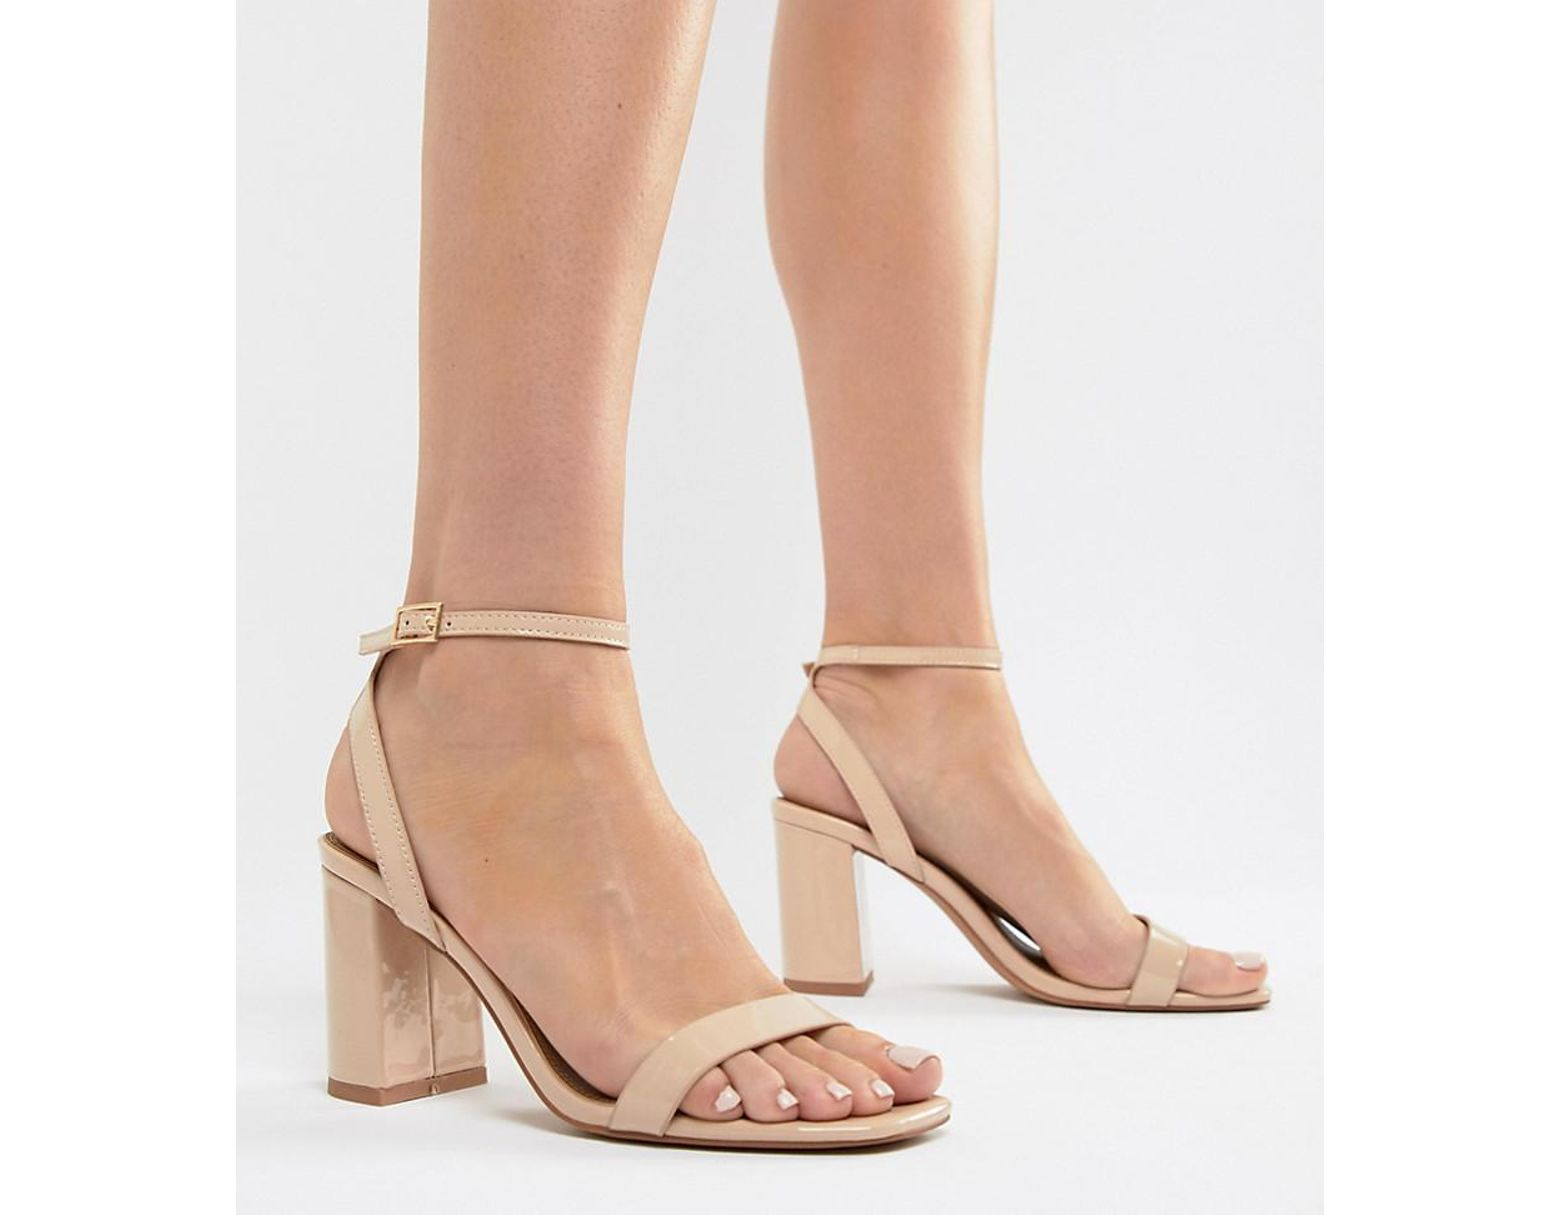 5a0e7a2648 ASOS Hong Kong Barely There Block Heeled Sandals In Warm Beige in Natural -  Lyst